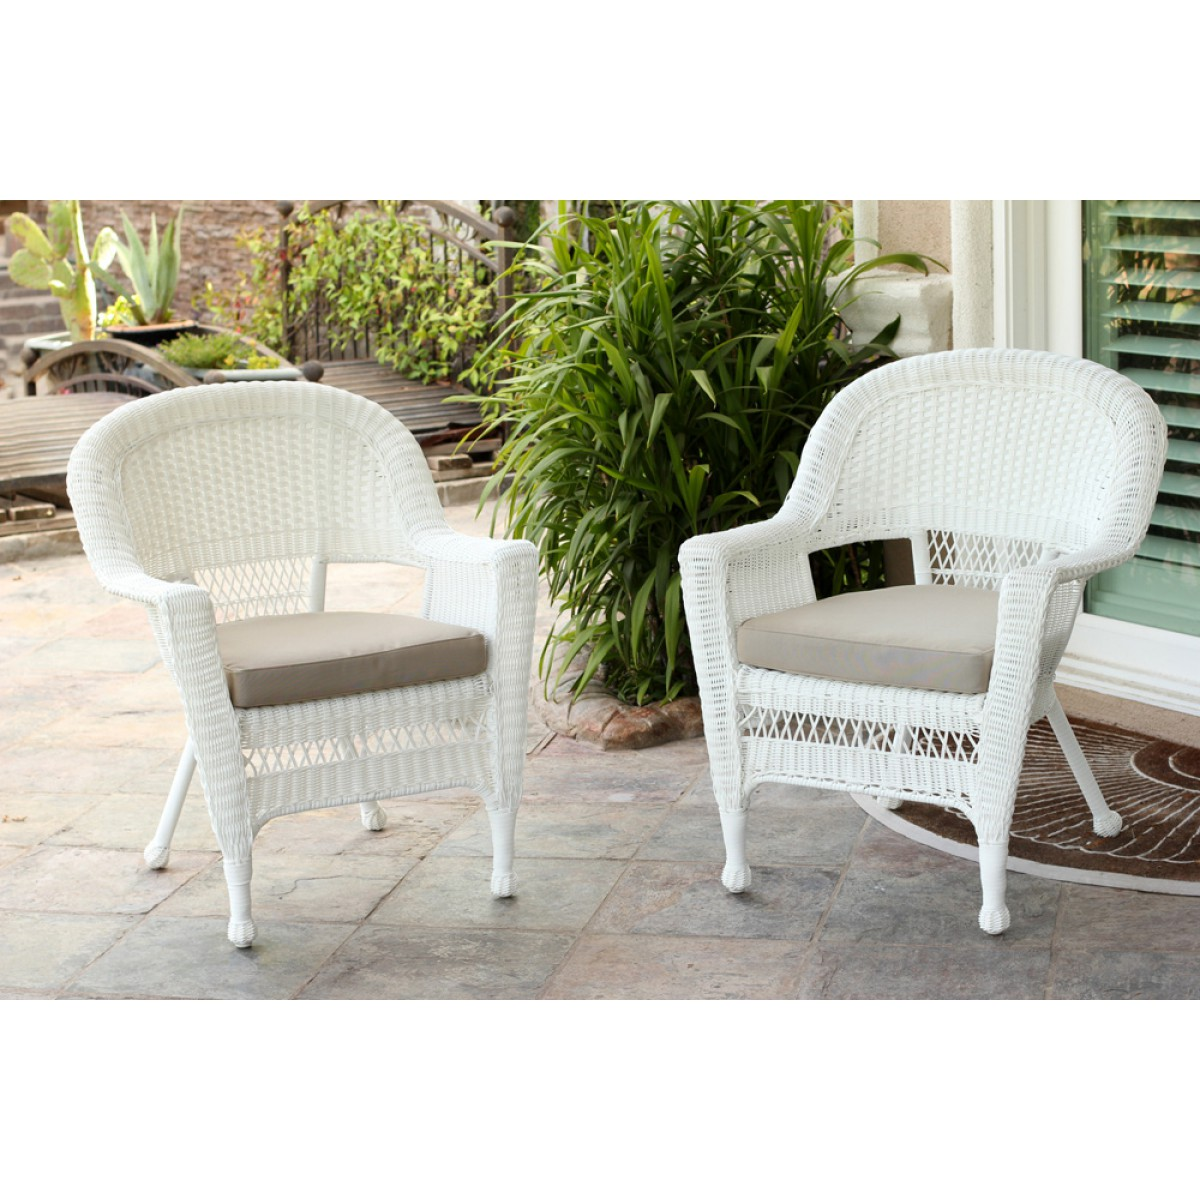 White Wicker Chair With Tan Cushion   Set of 10